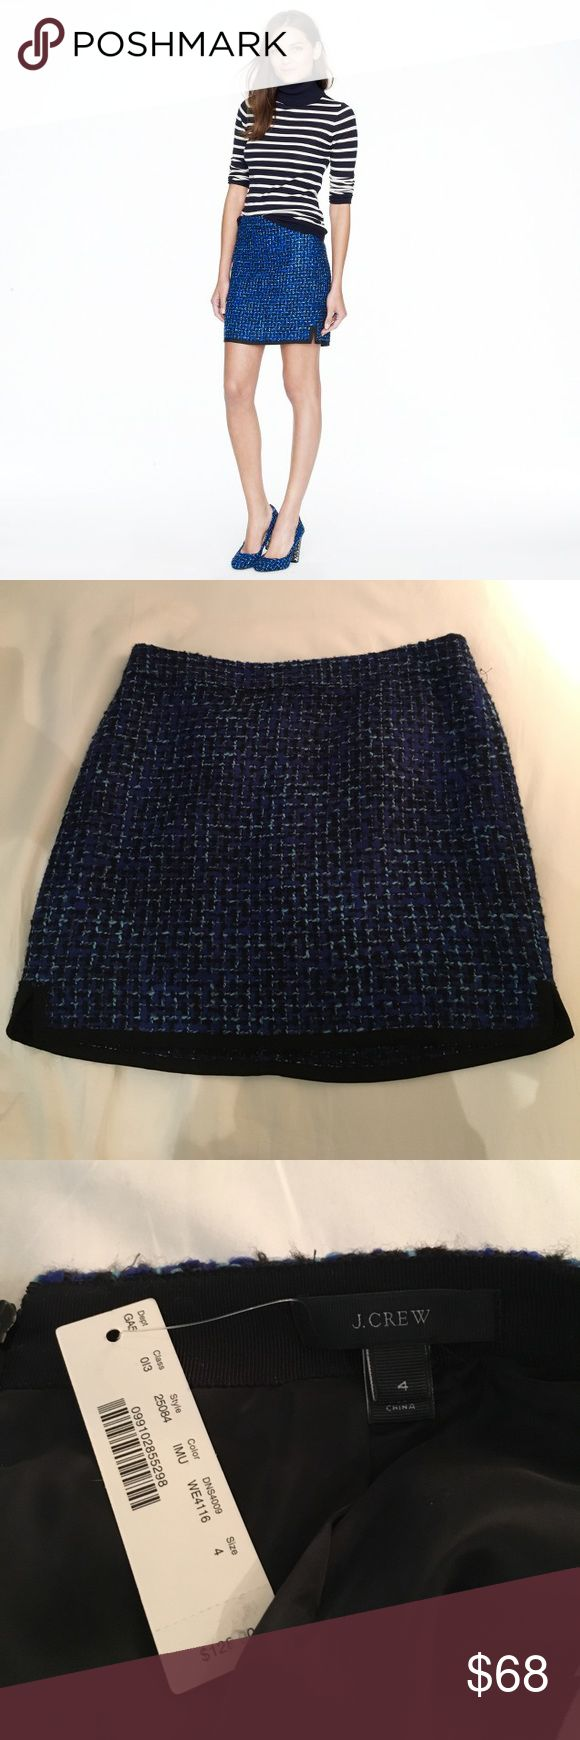 ✨NWT✨ Postage Stamp Mini in Indigo Tweed J. Crew Beautiful, business chic skirt in a blue woven tweed pattern. 17 inches from waist to hem. Looks great with tights and a sweater or collared shirt! Never worn before, still has tags. Size 4. Feel free to make offers. J. Crew Skirts Mini